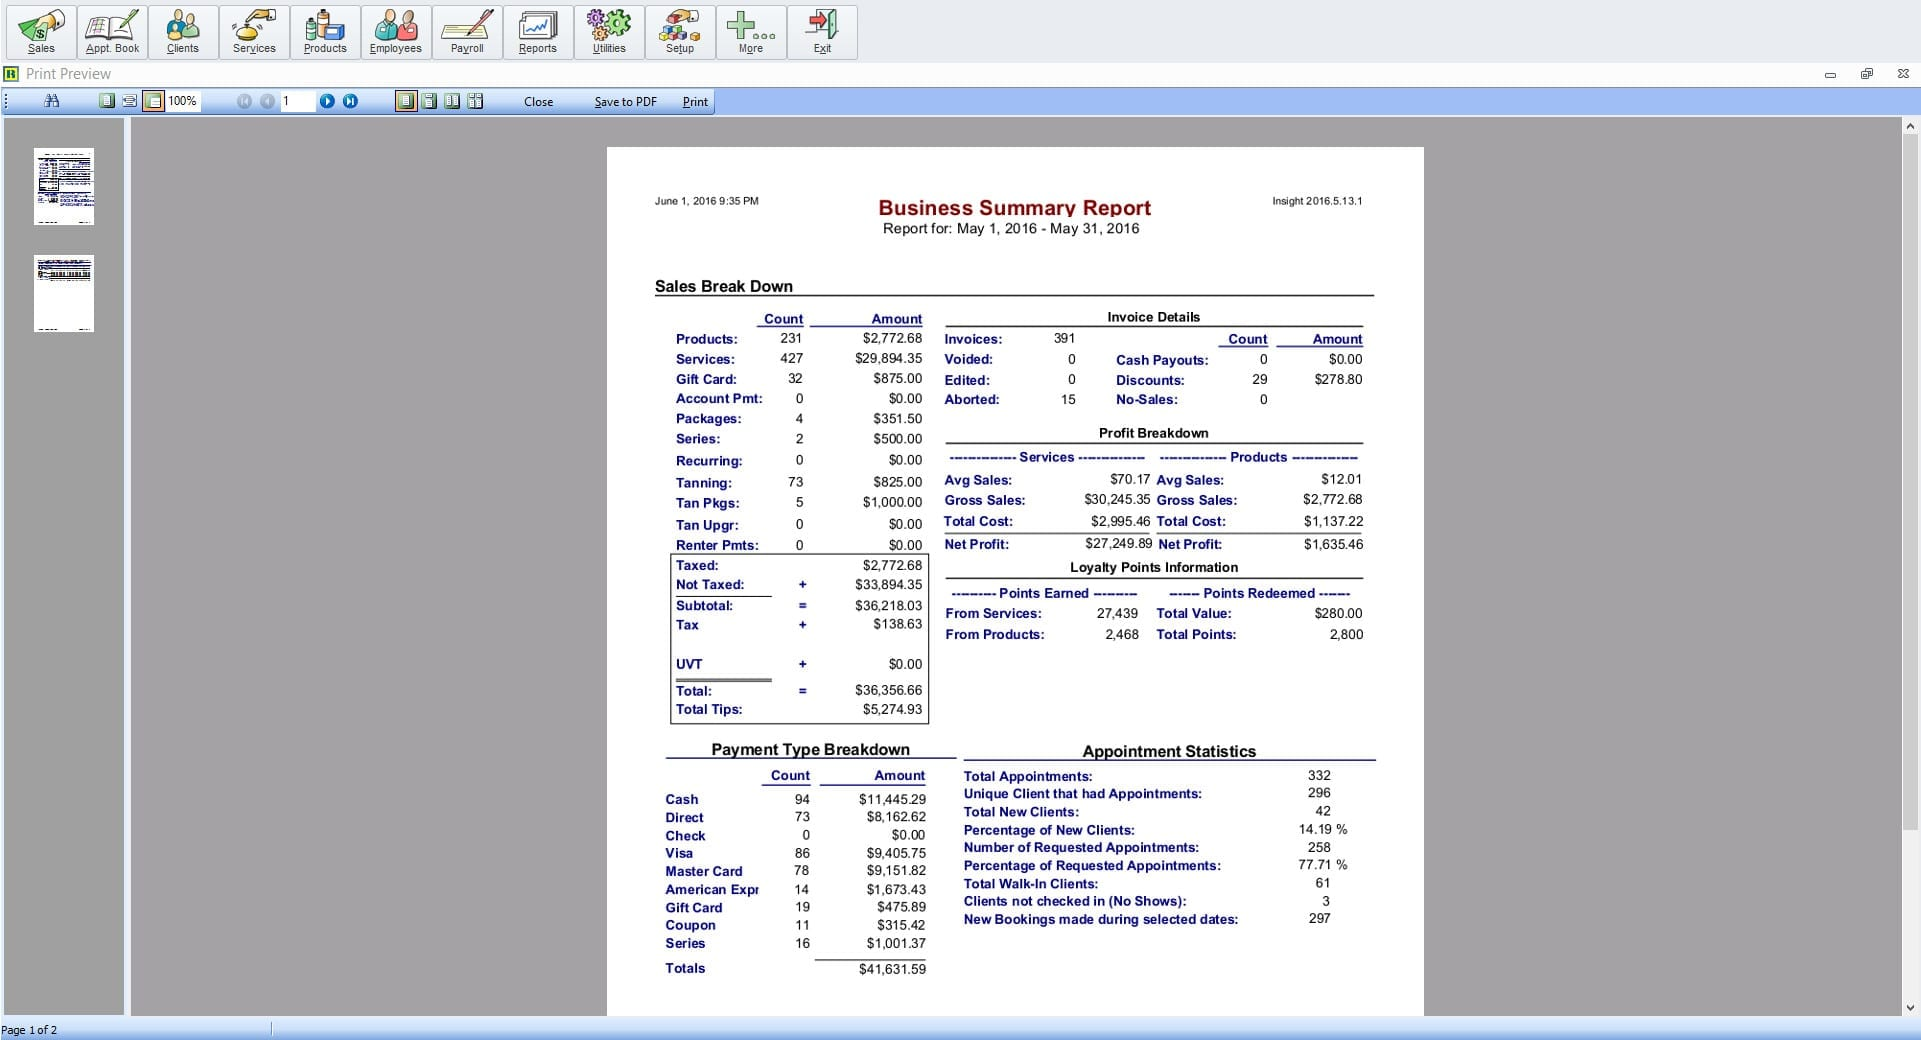 Business Summary Report